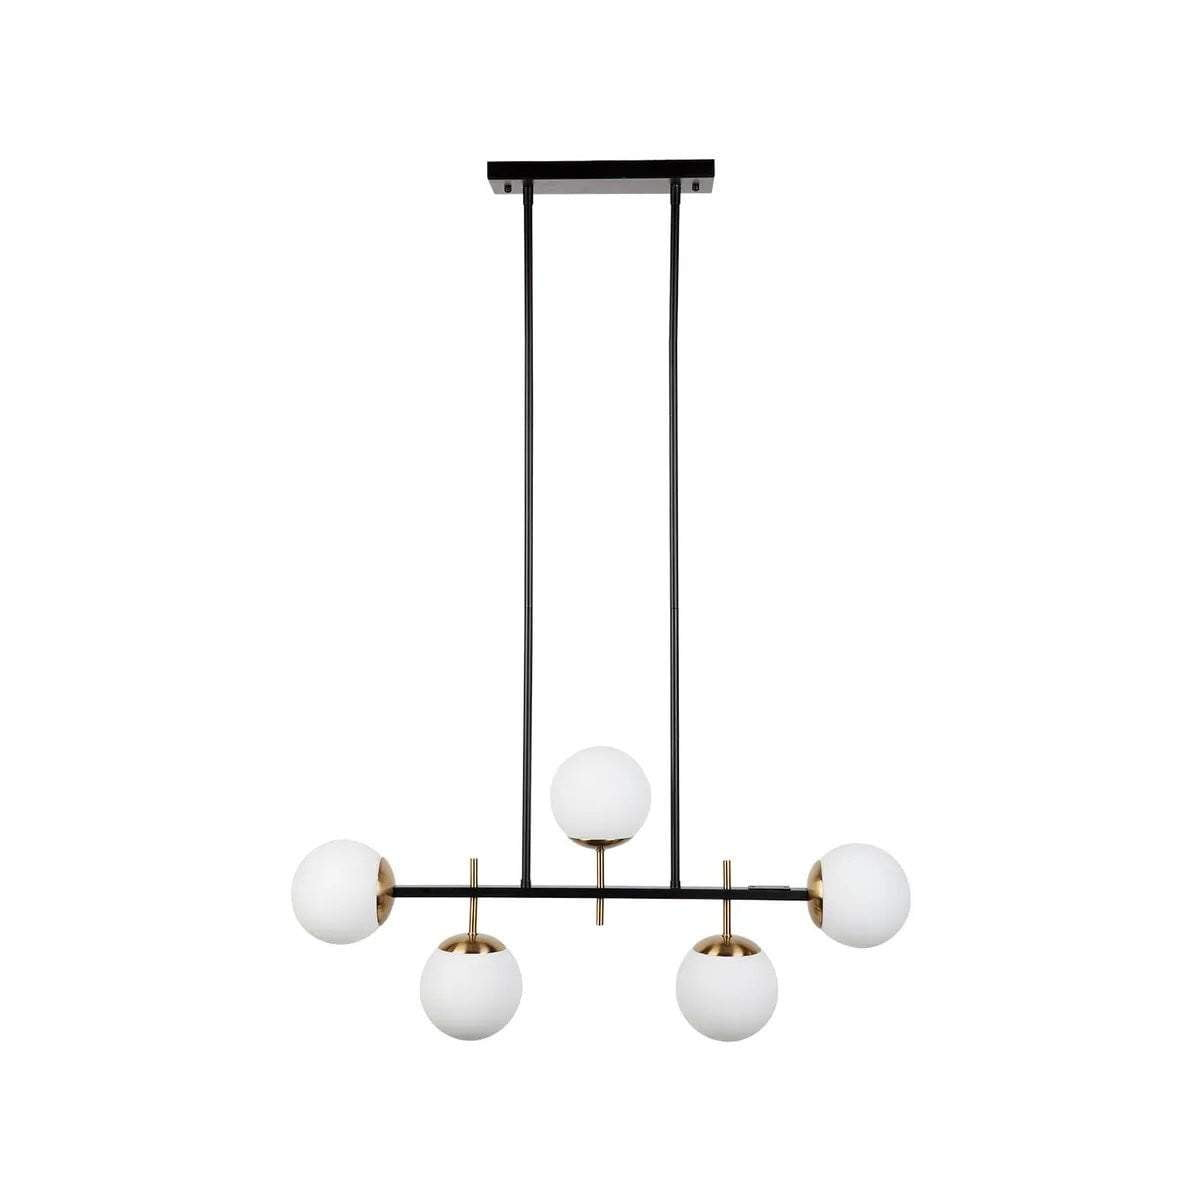 Maddox Linear Pendant Light